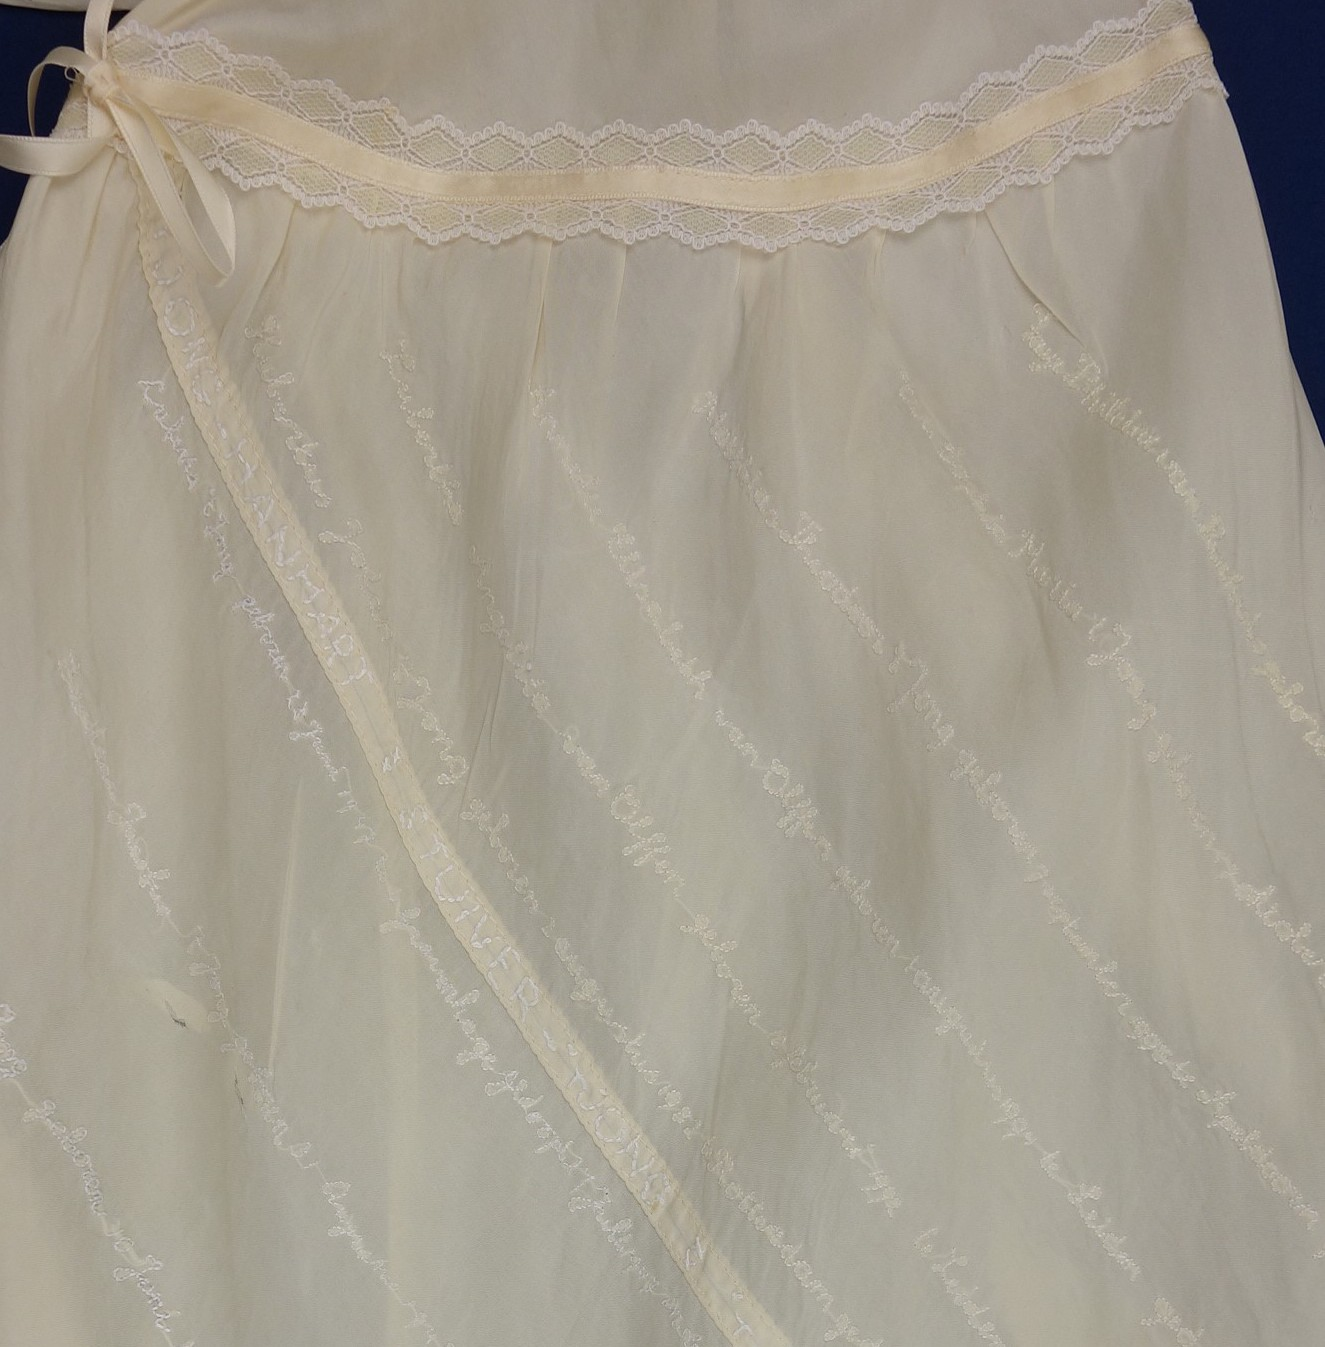 Detail of the christening gown, with the names of the baptised children embroidered in diagonal lines.